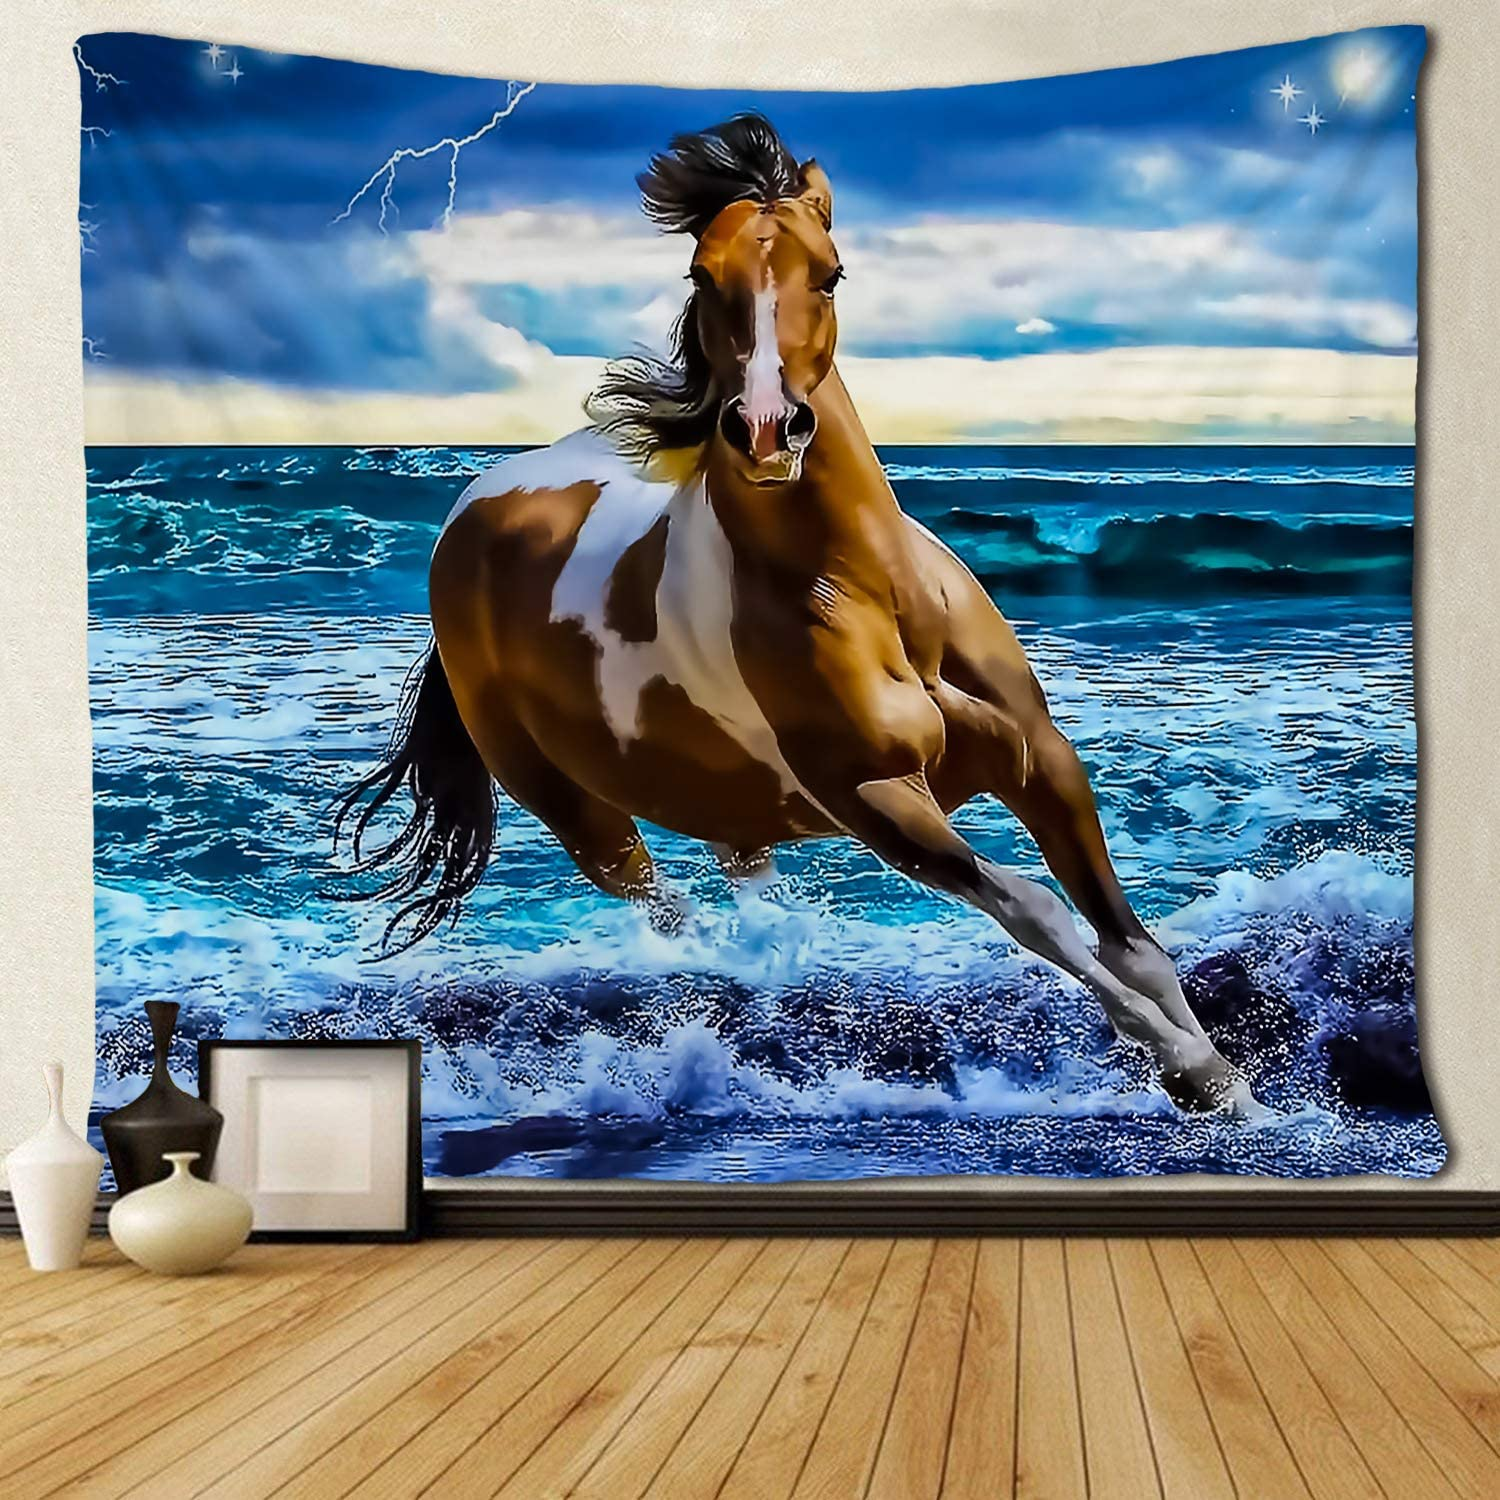 SARA NELL Tapestry Horse Running On The Beach Tapestries Wall Hanging Hippie Art Home Decoration College Dorm Decor for Living Room Bedroom 60x90 Inches